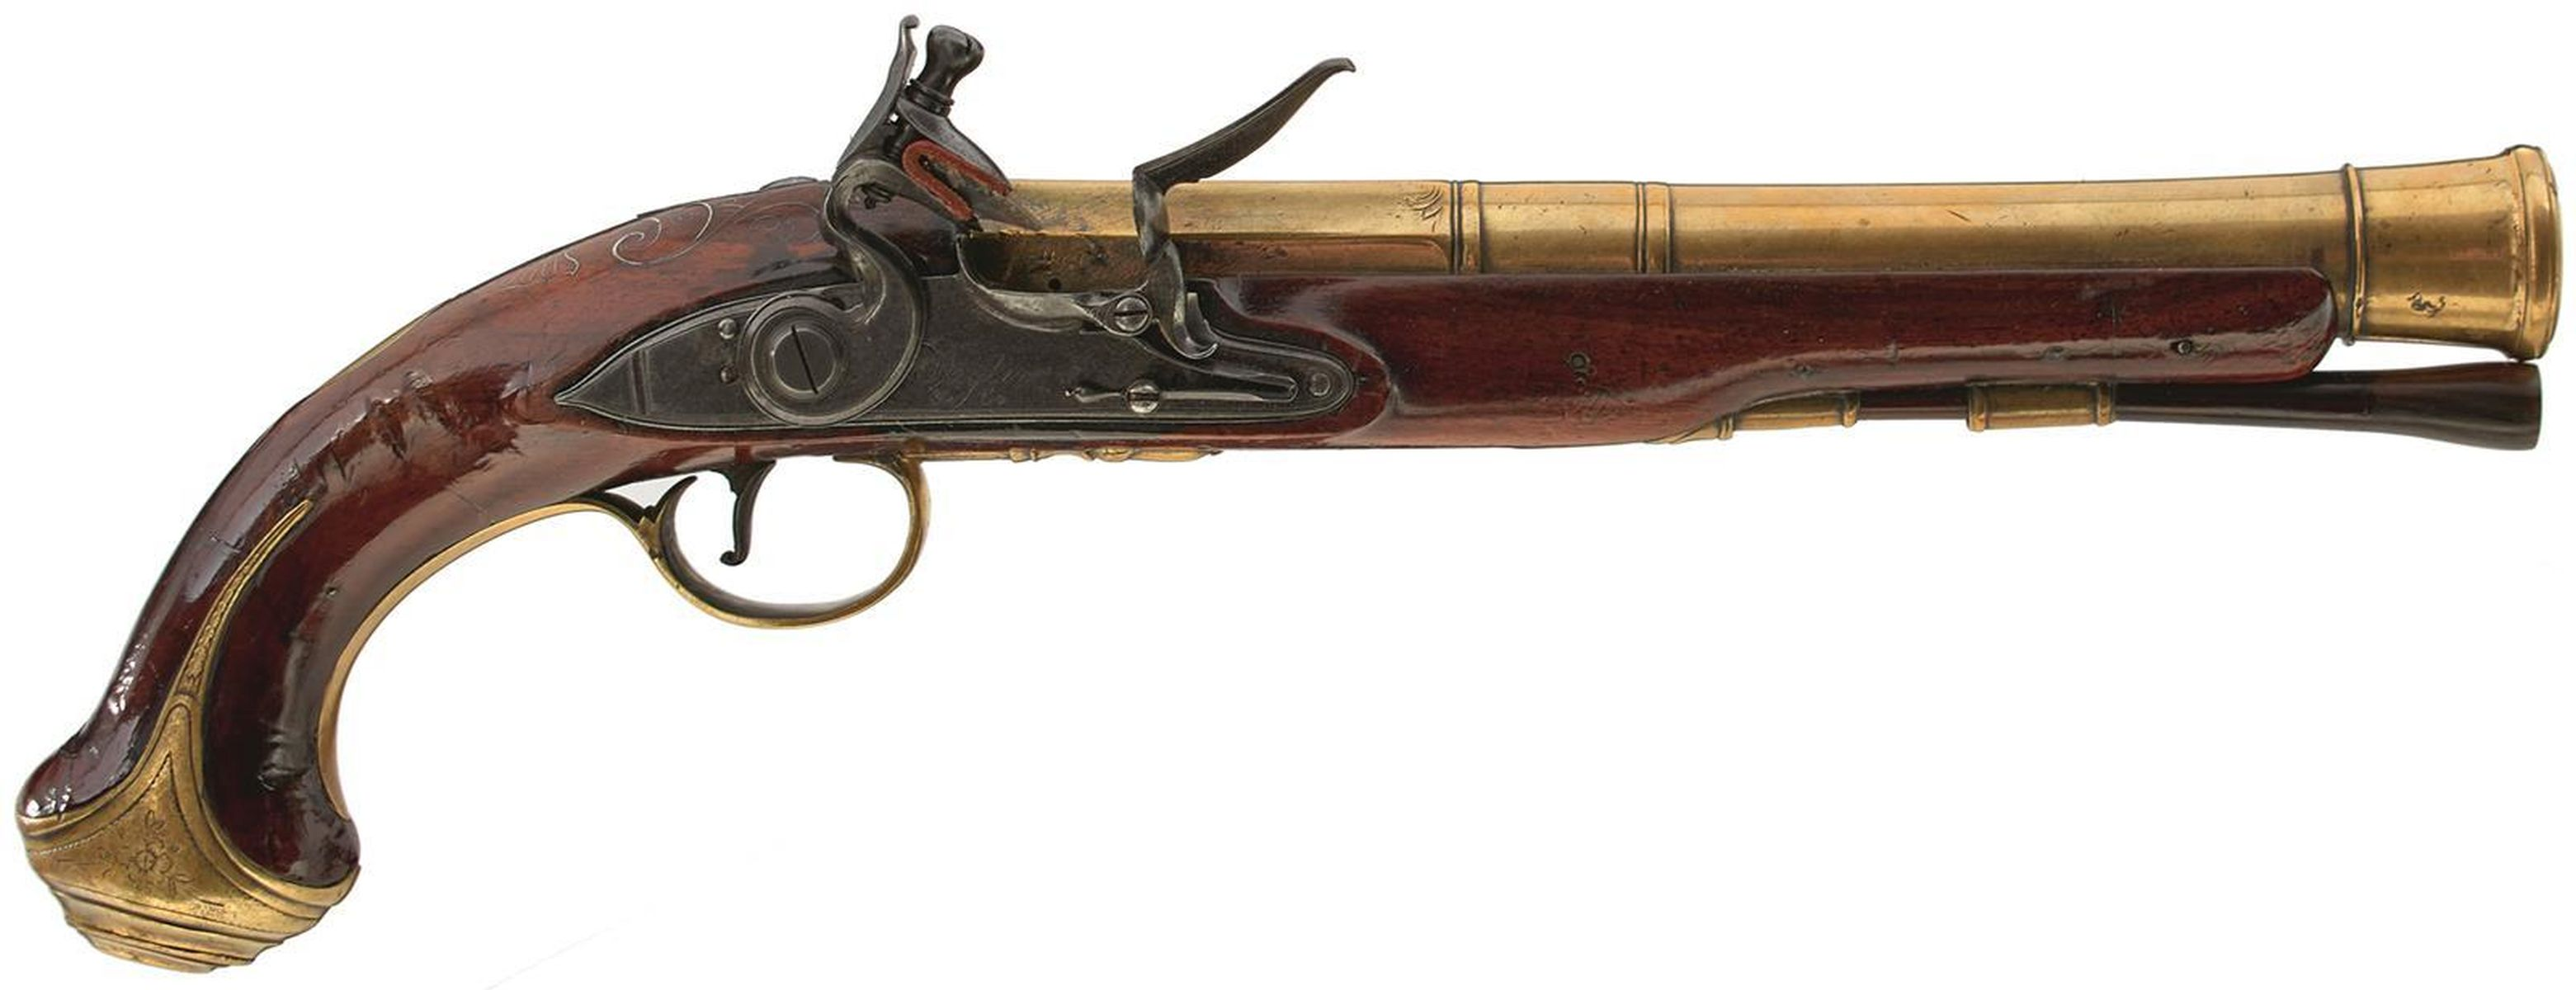 A CASED PAIR OF 6-BORE FLINTLOCK BRASS BARRELLED BLUNDERBUSS PISTOLS BY TAYLER, 9inch four stage - Image 3 of 25